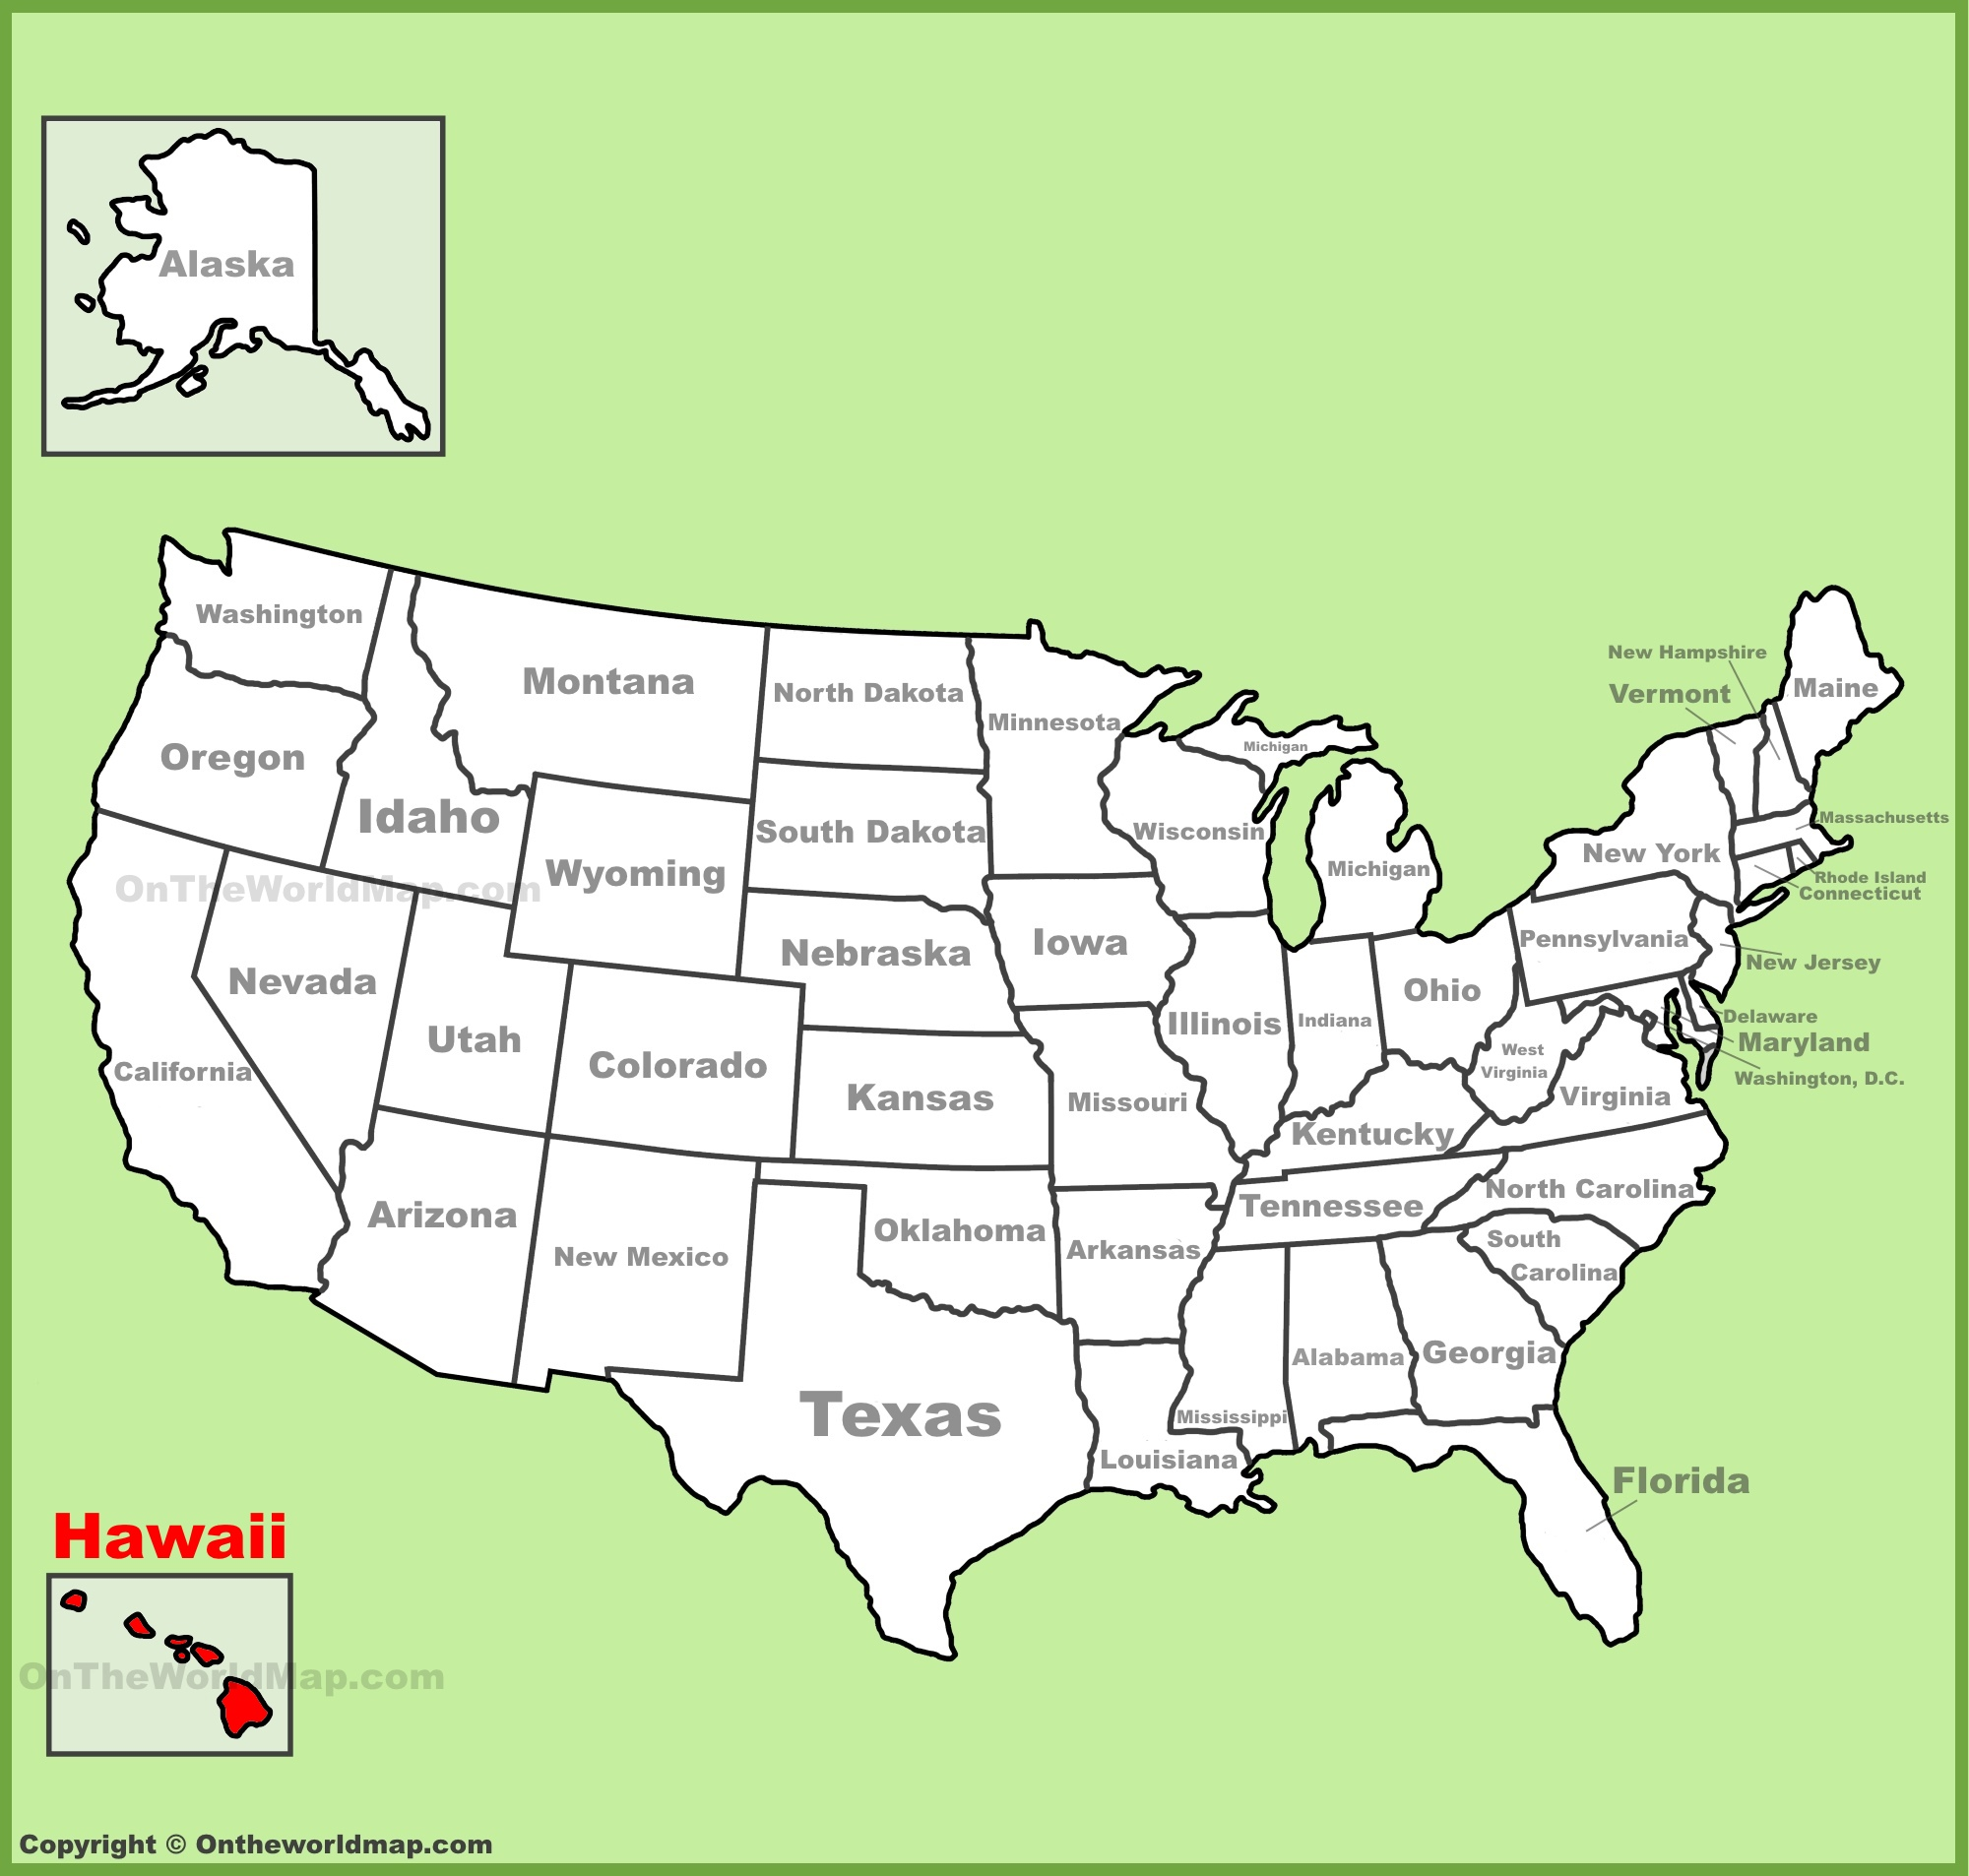 Hawaii On A Map Hawaii State Maps | USA | Maps of Hawaii (Hawaiian Islands)